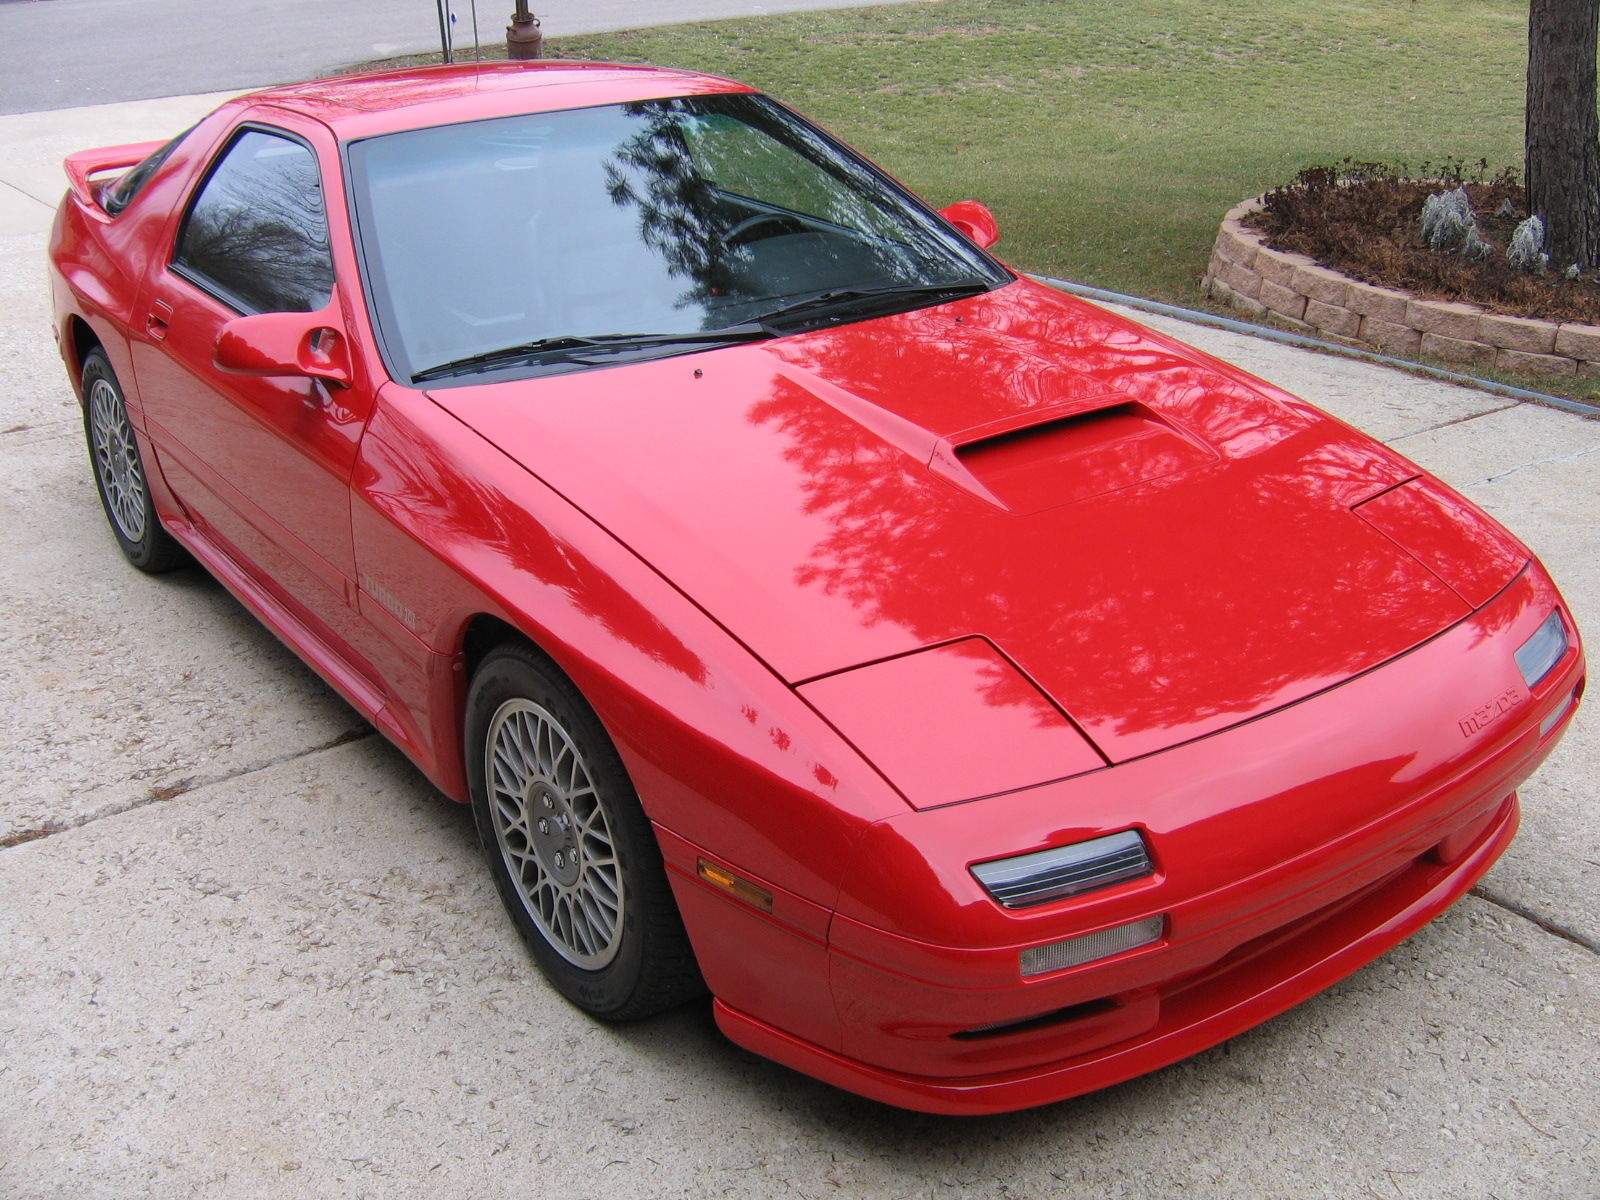 1989 Mazda RX-7 Was Just Sold for Record Value